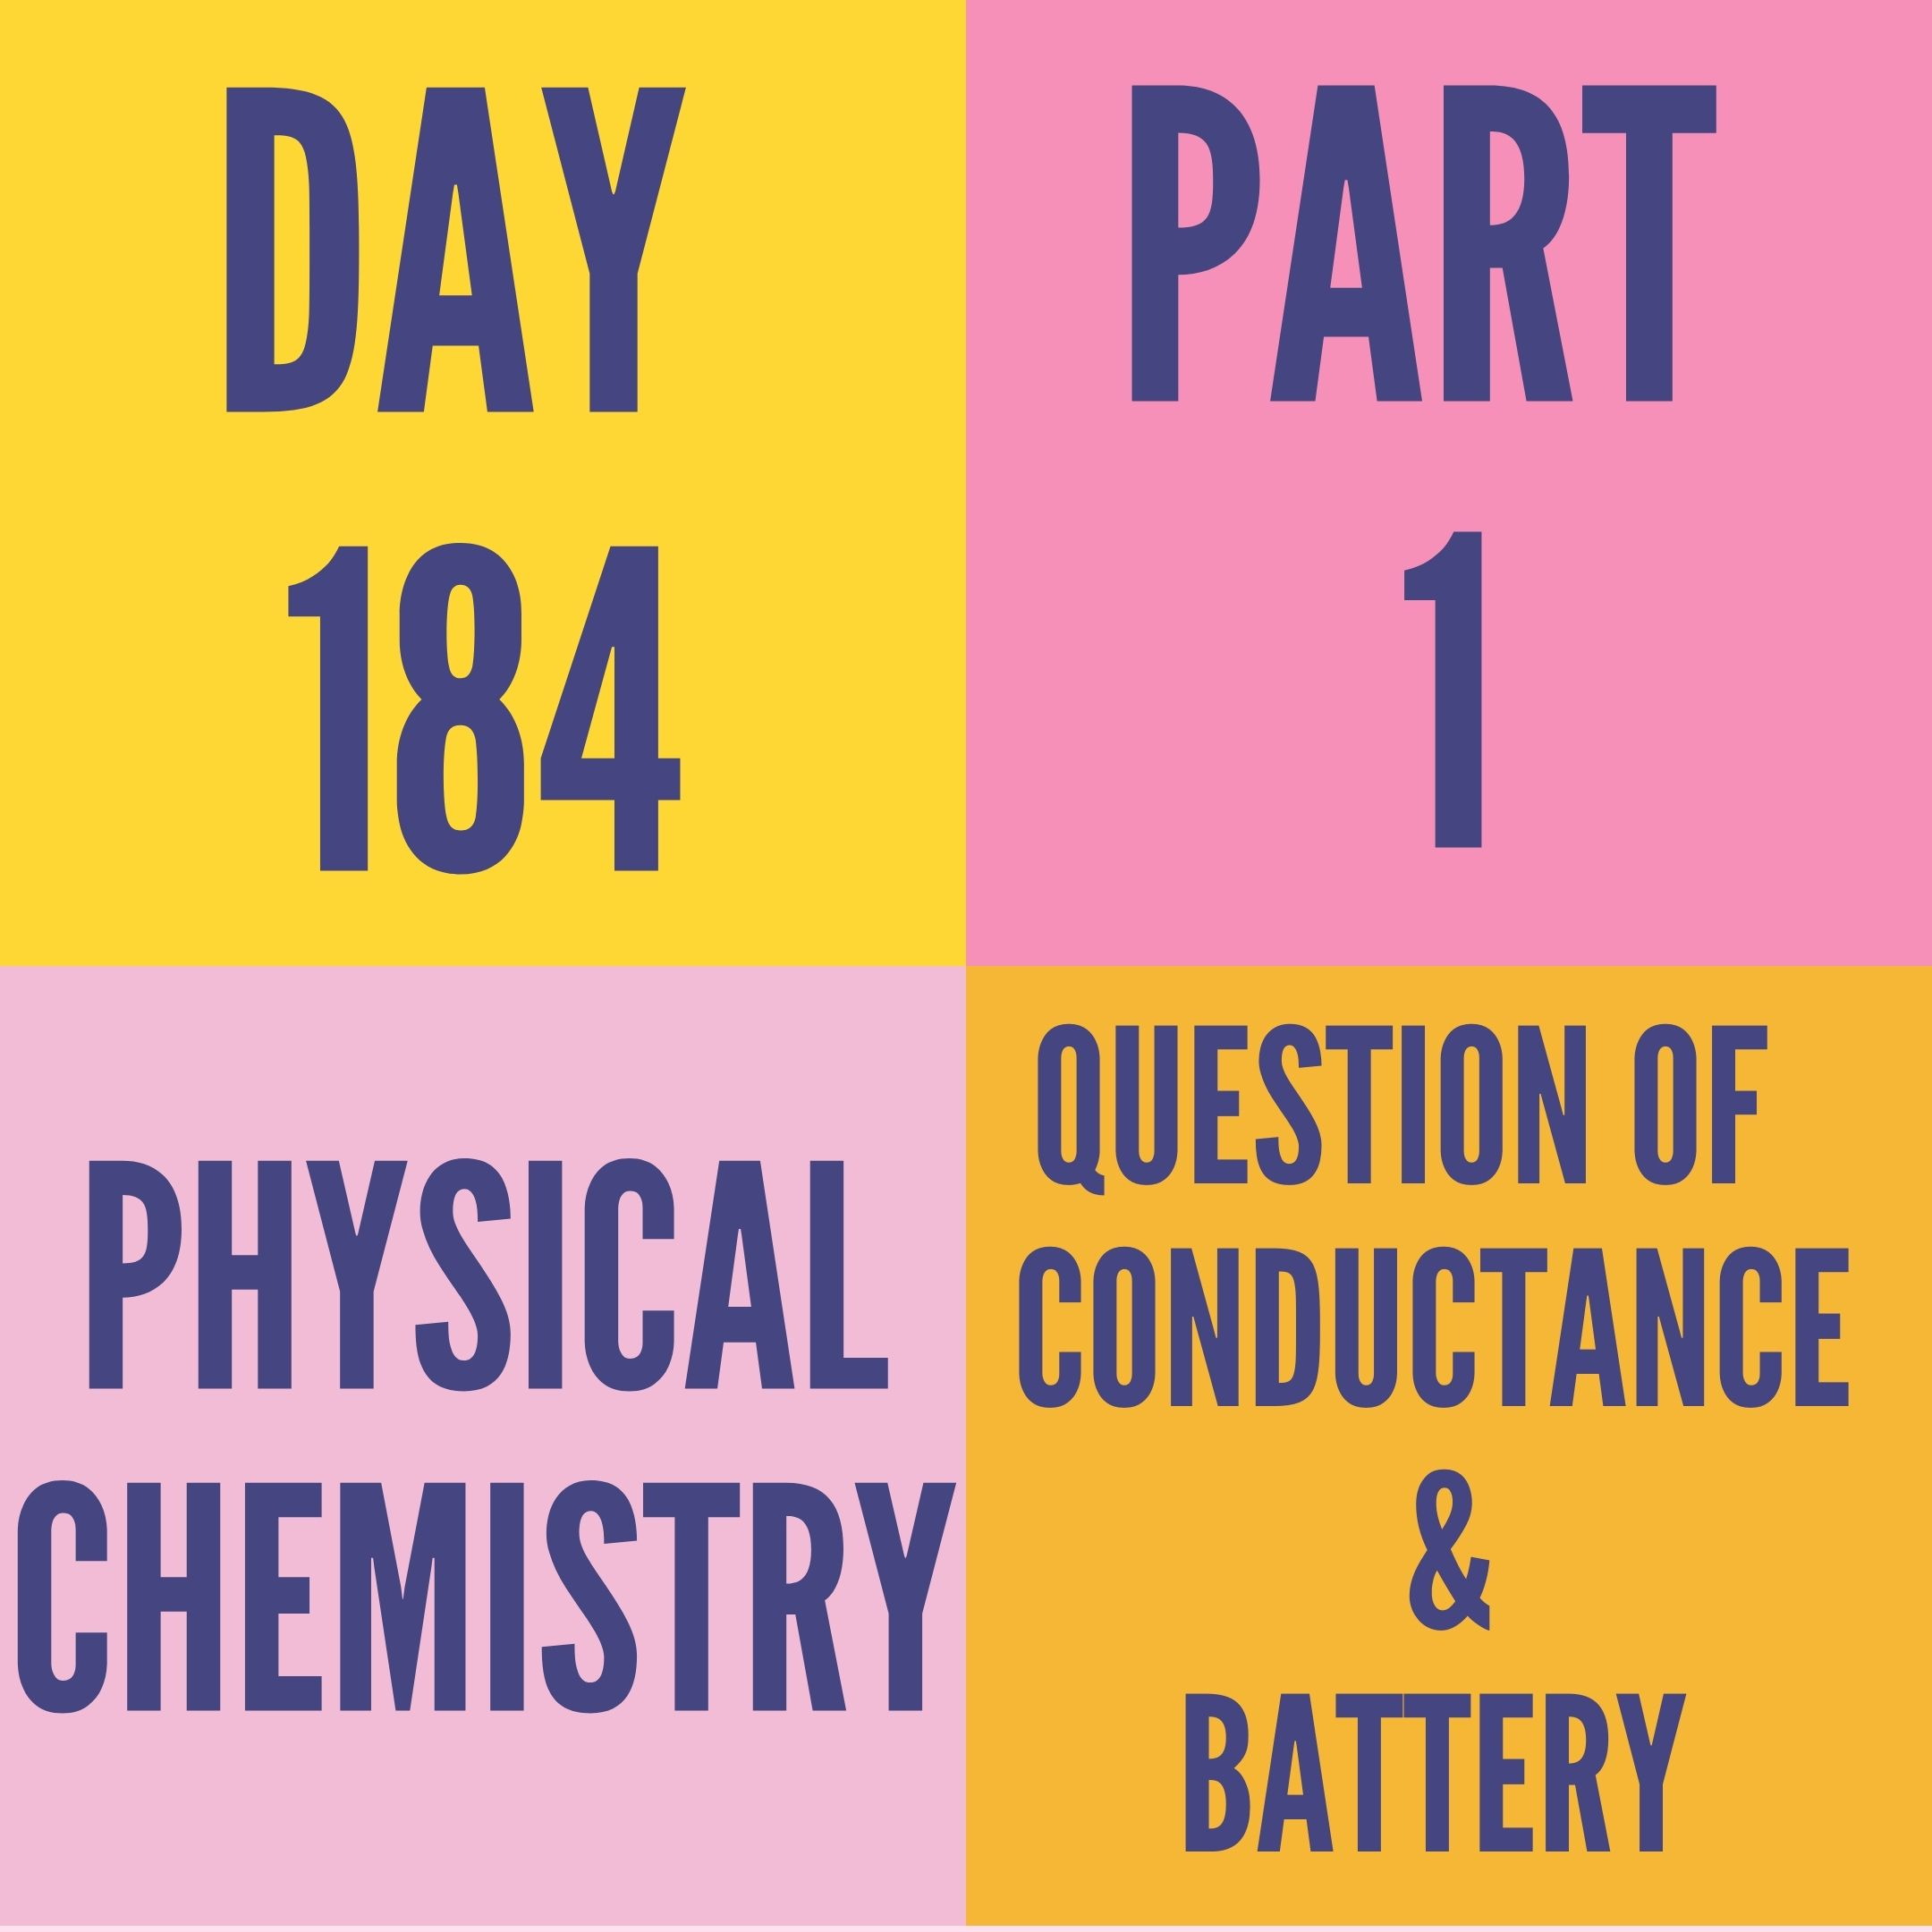 DAY-184 PART-1 QUESTION OF CONDUCTANCE & BATTERY